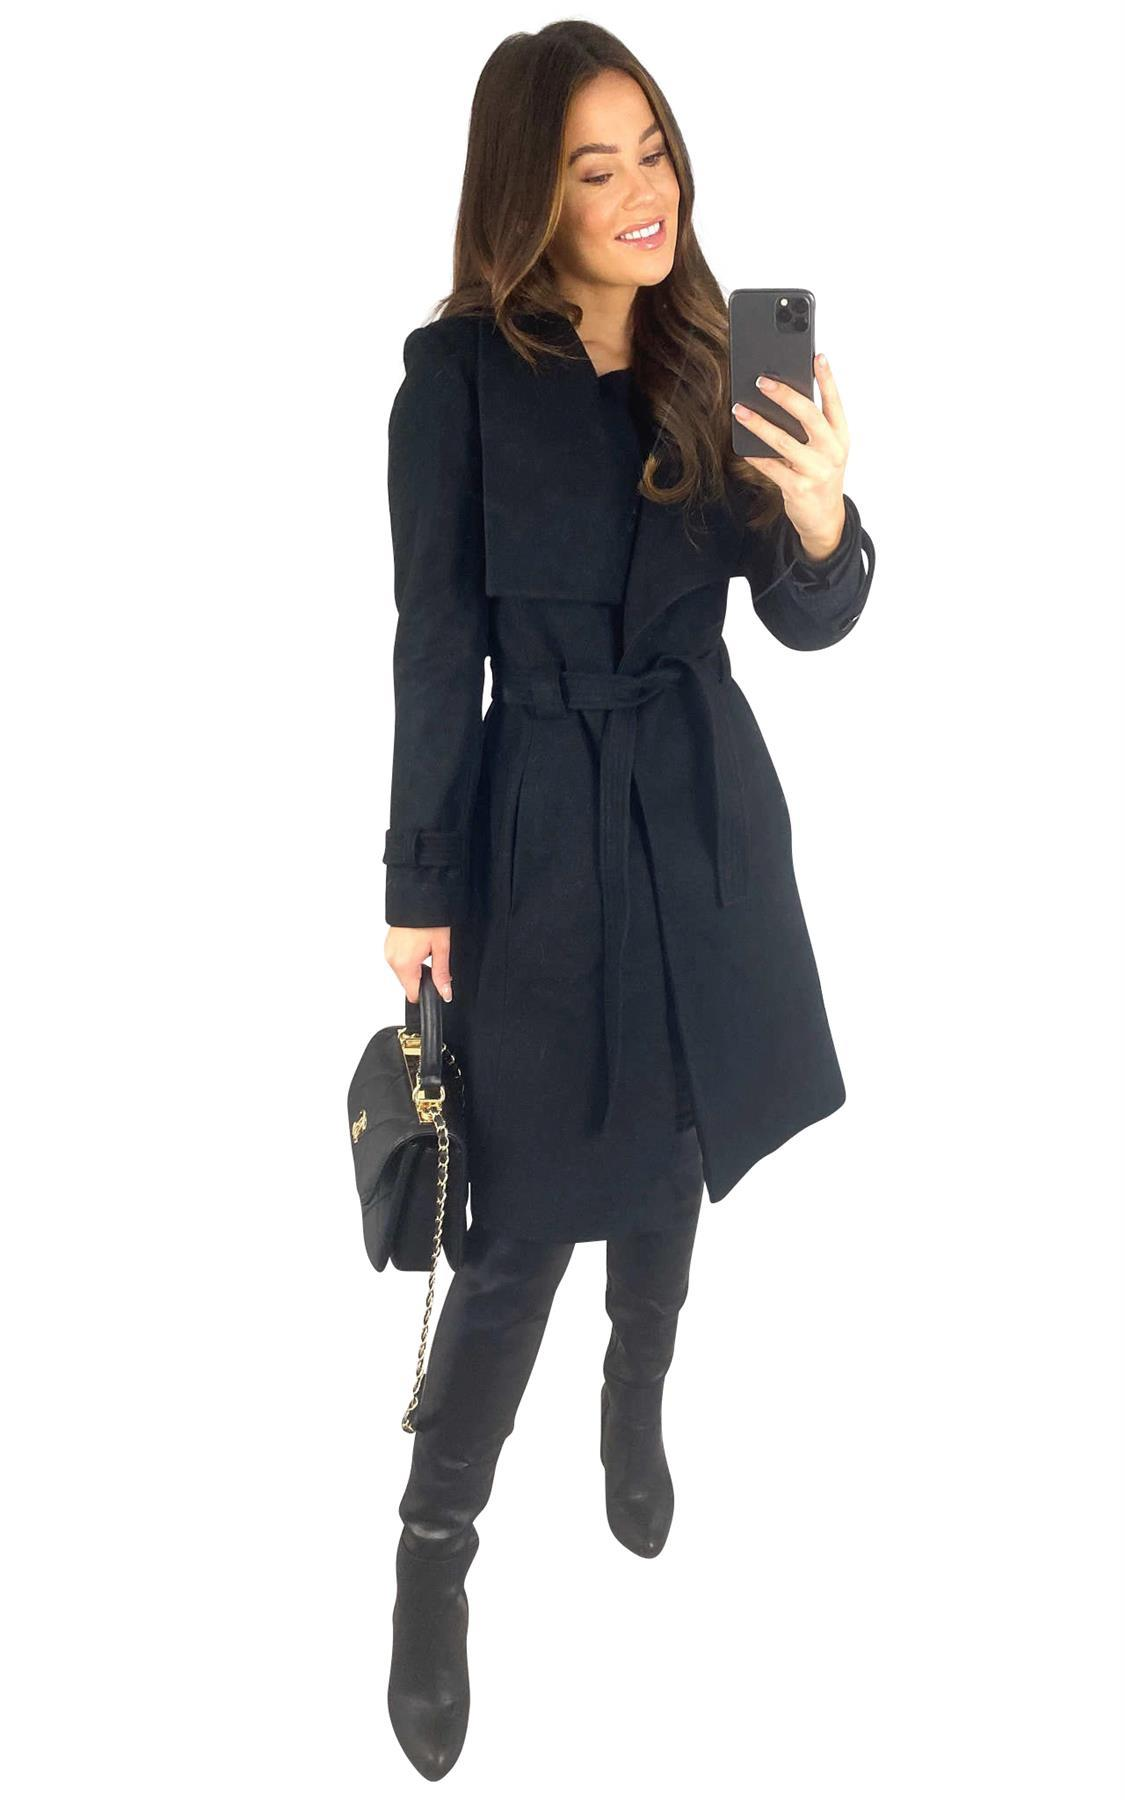 A Wrap Winter Coat With Stud Fastening.The Coat Has A large Collar, Tie Belt And 2 Pockets